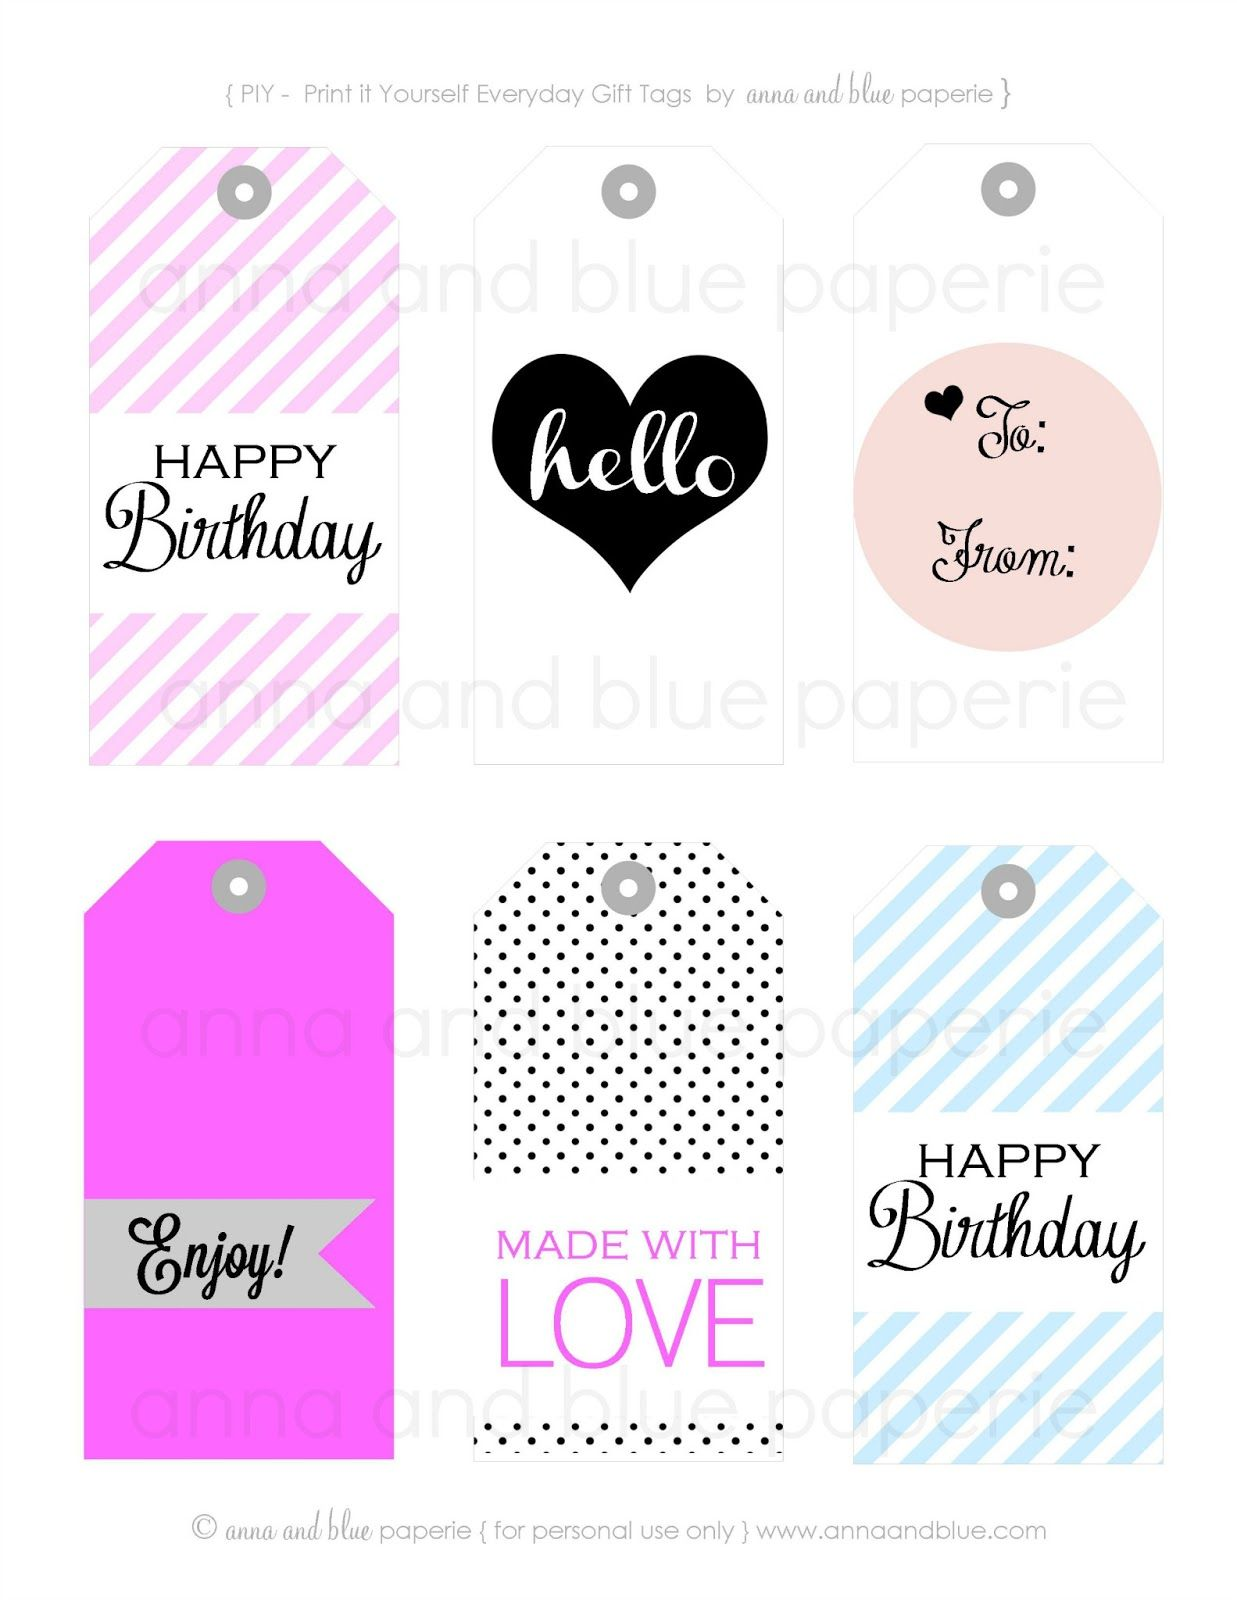 free printable gift tags @anna and blue paperie | Gift wrap ideas ...